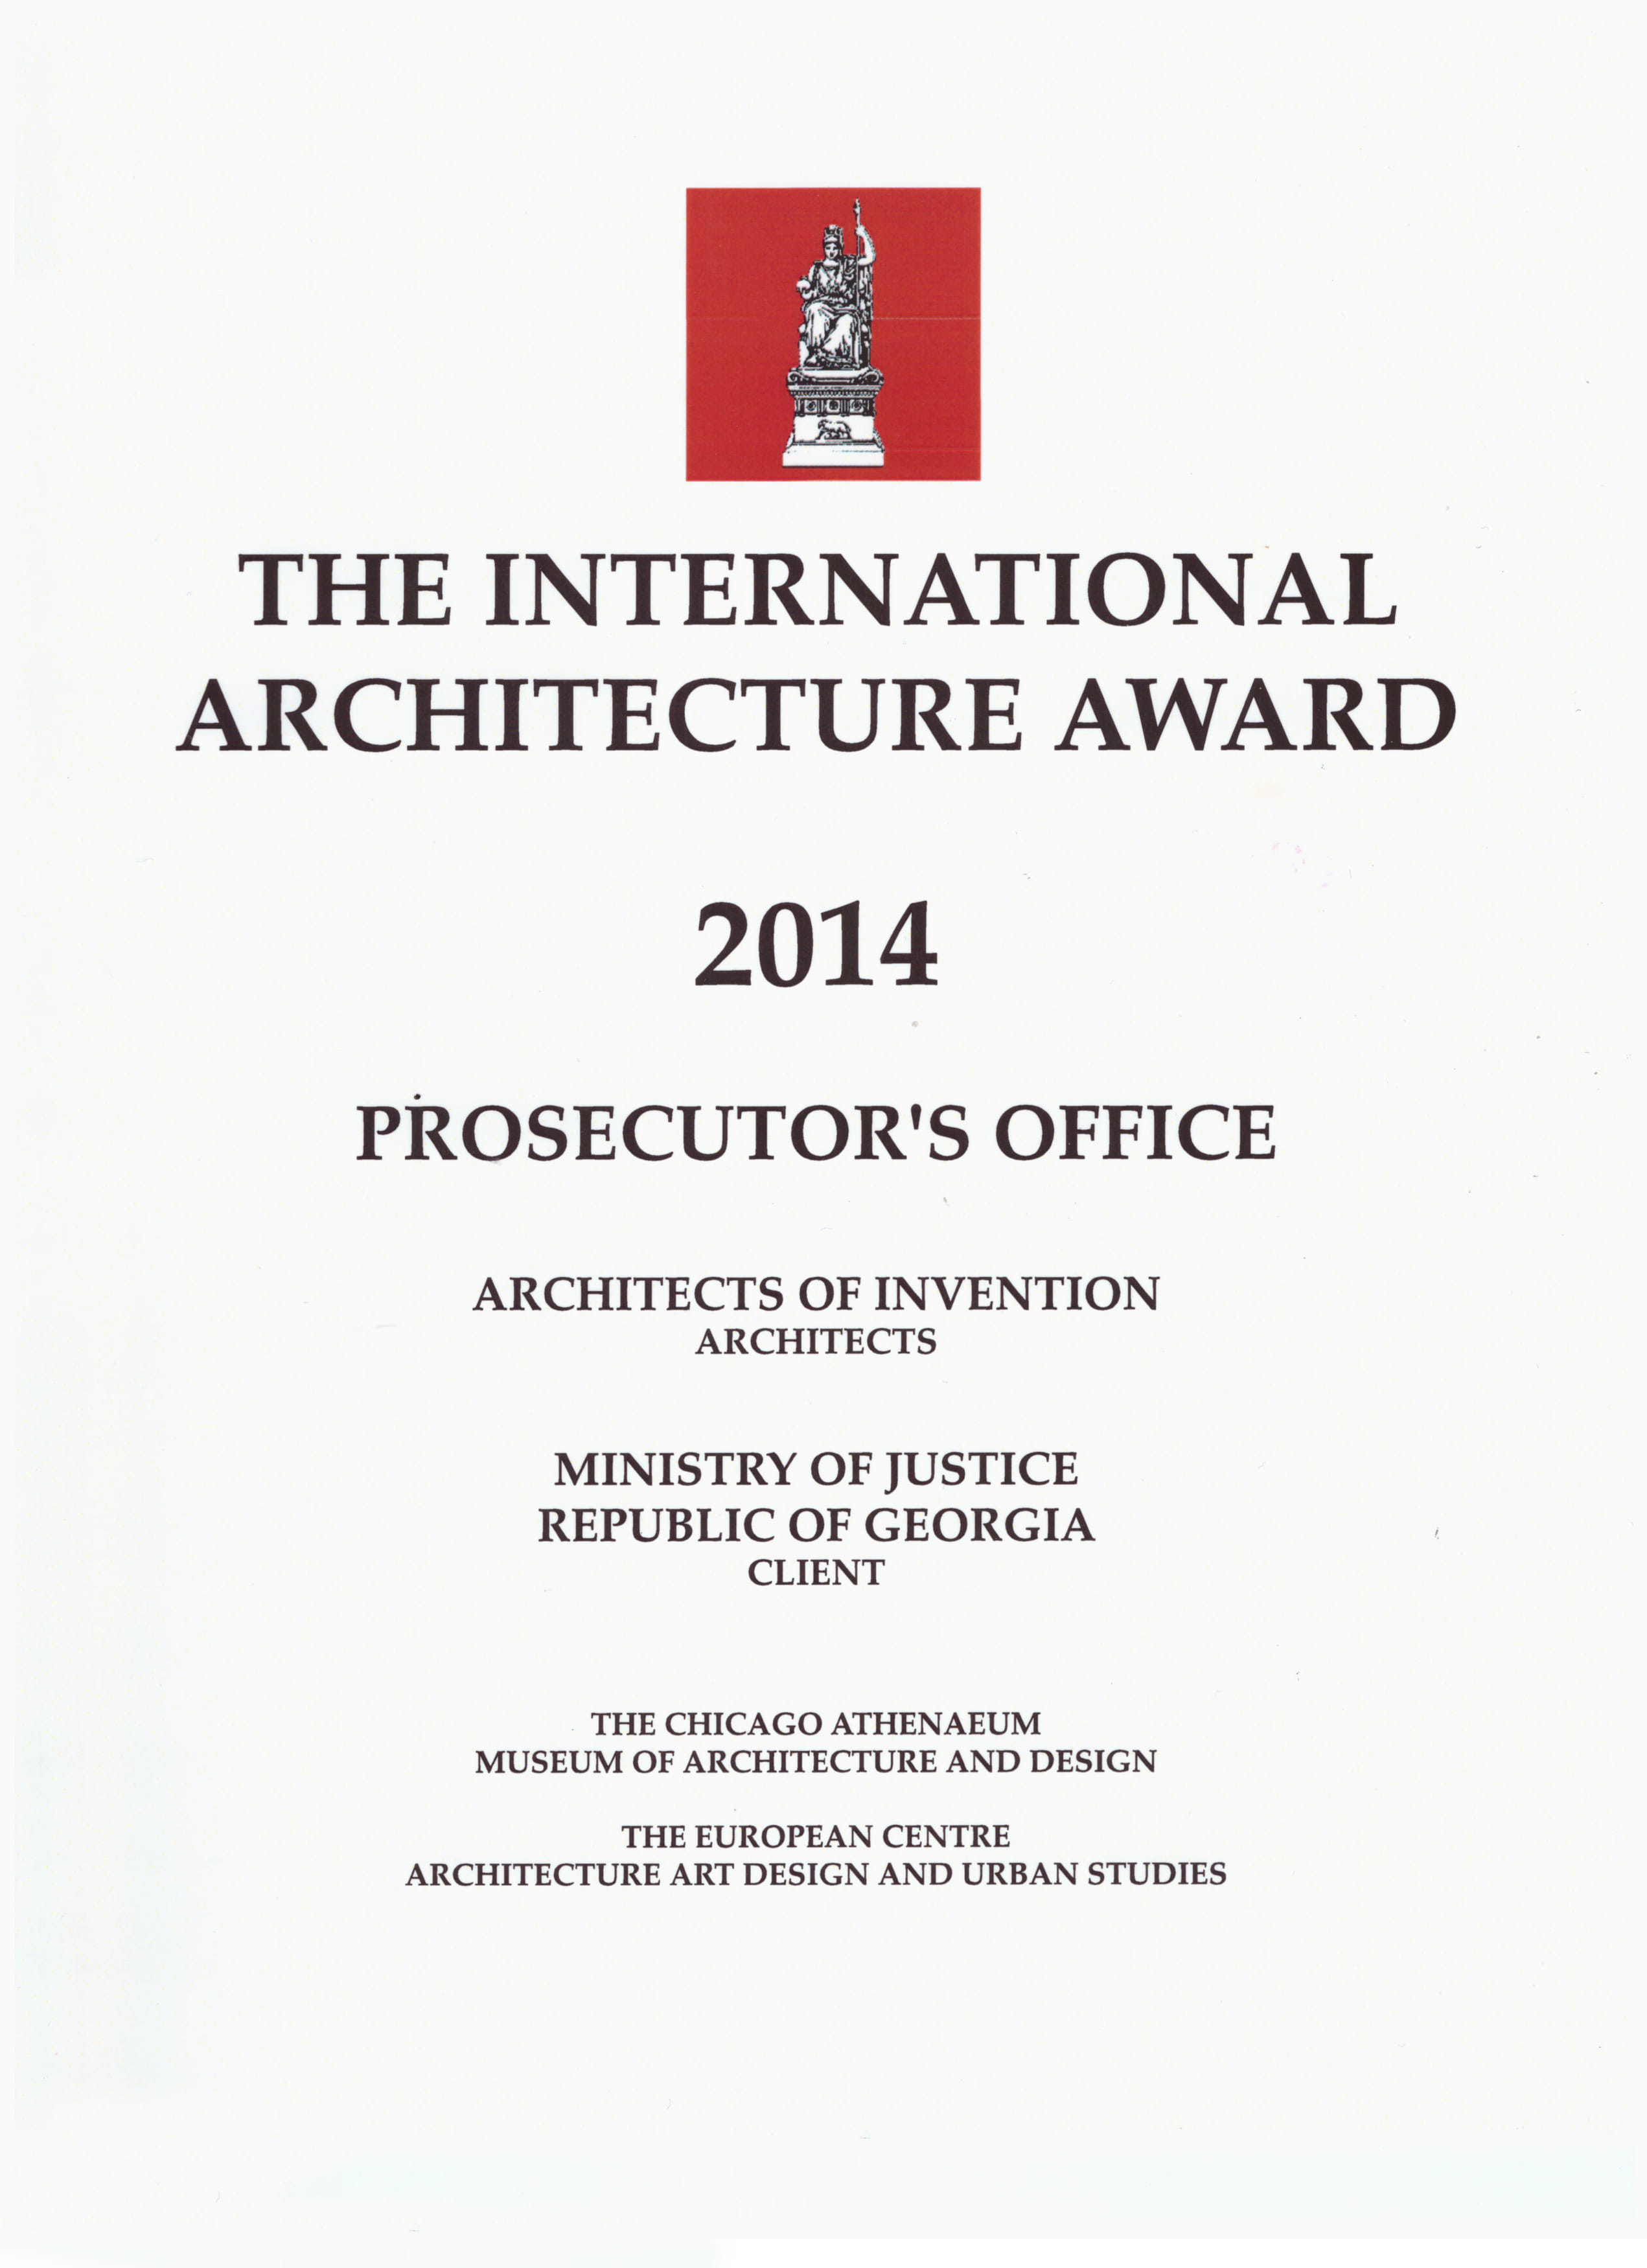 architects of invention news